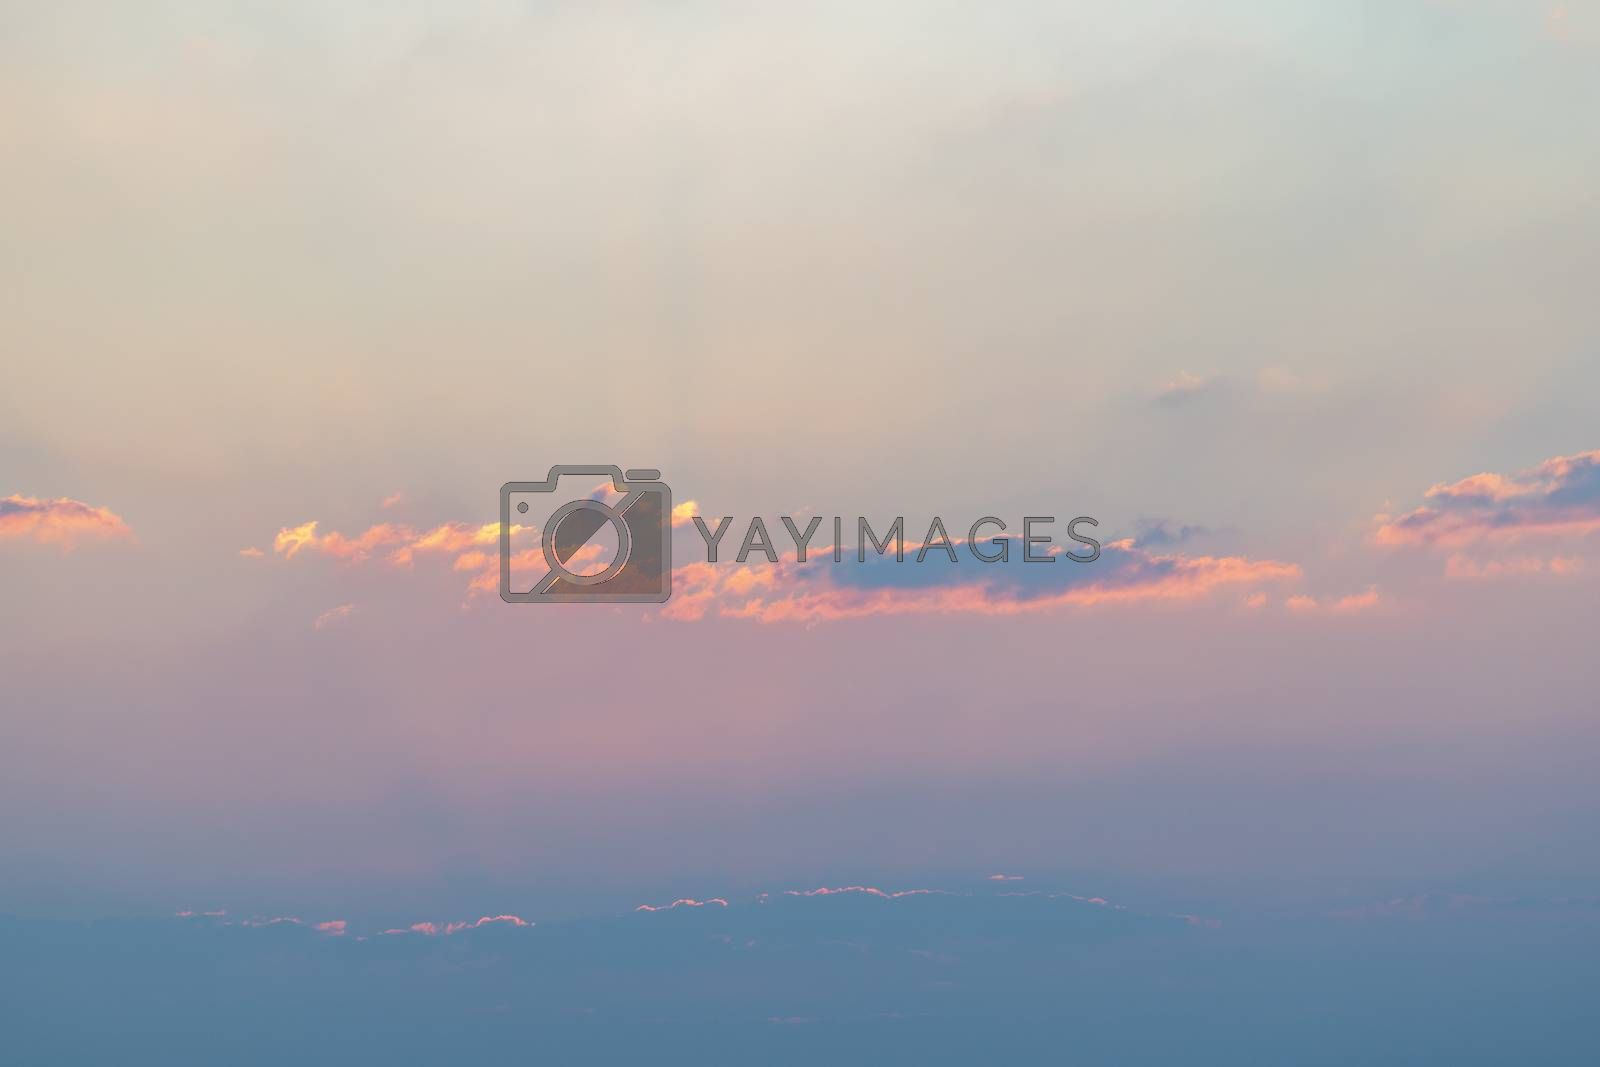 Colorful clouds in the sky for background. Pastel colors sky with yellow, orange and black clouds.